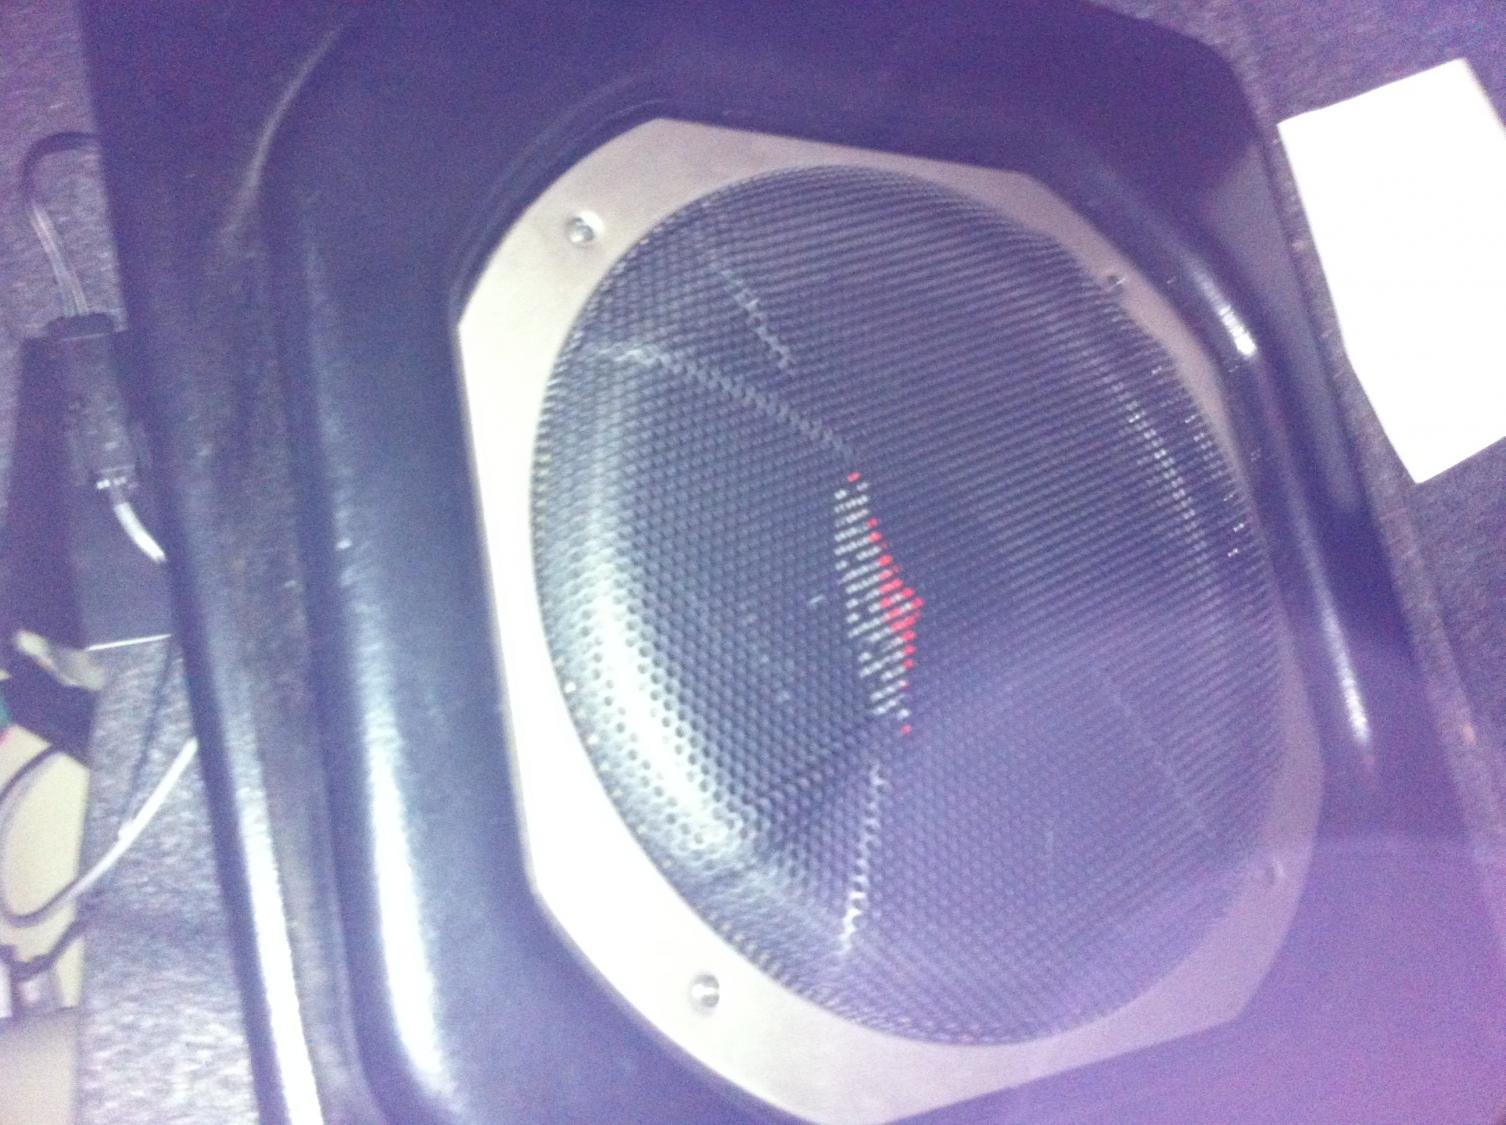 Mopar kicker trunk subwoofer, matching mopar kicker amp and harness-image.jpg